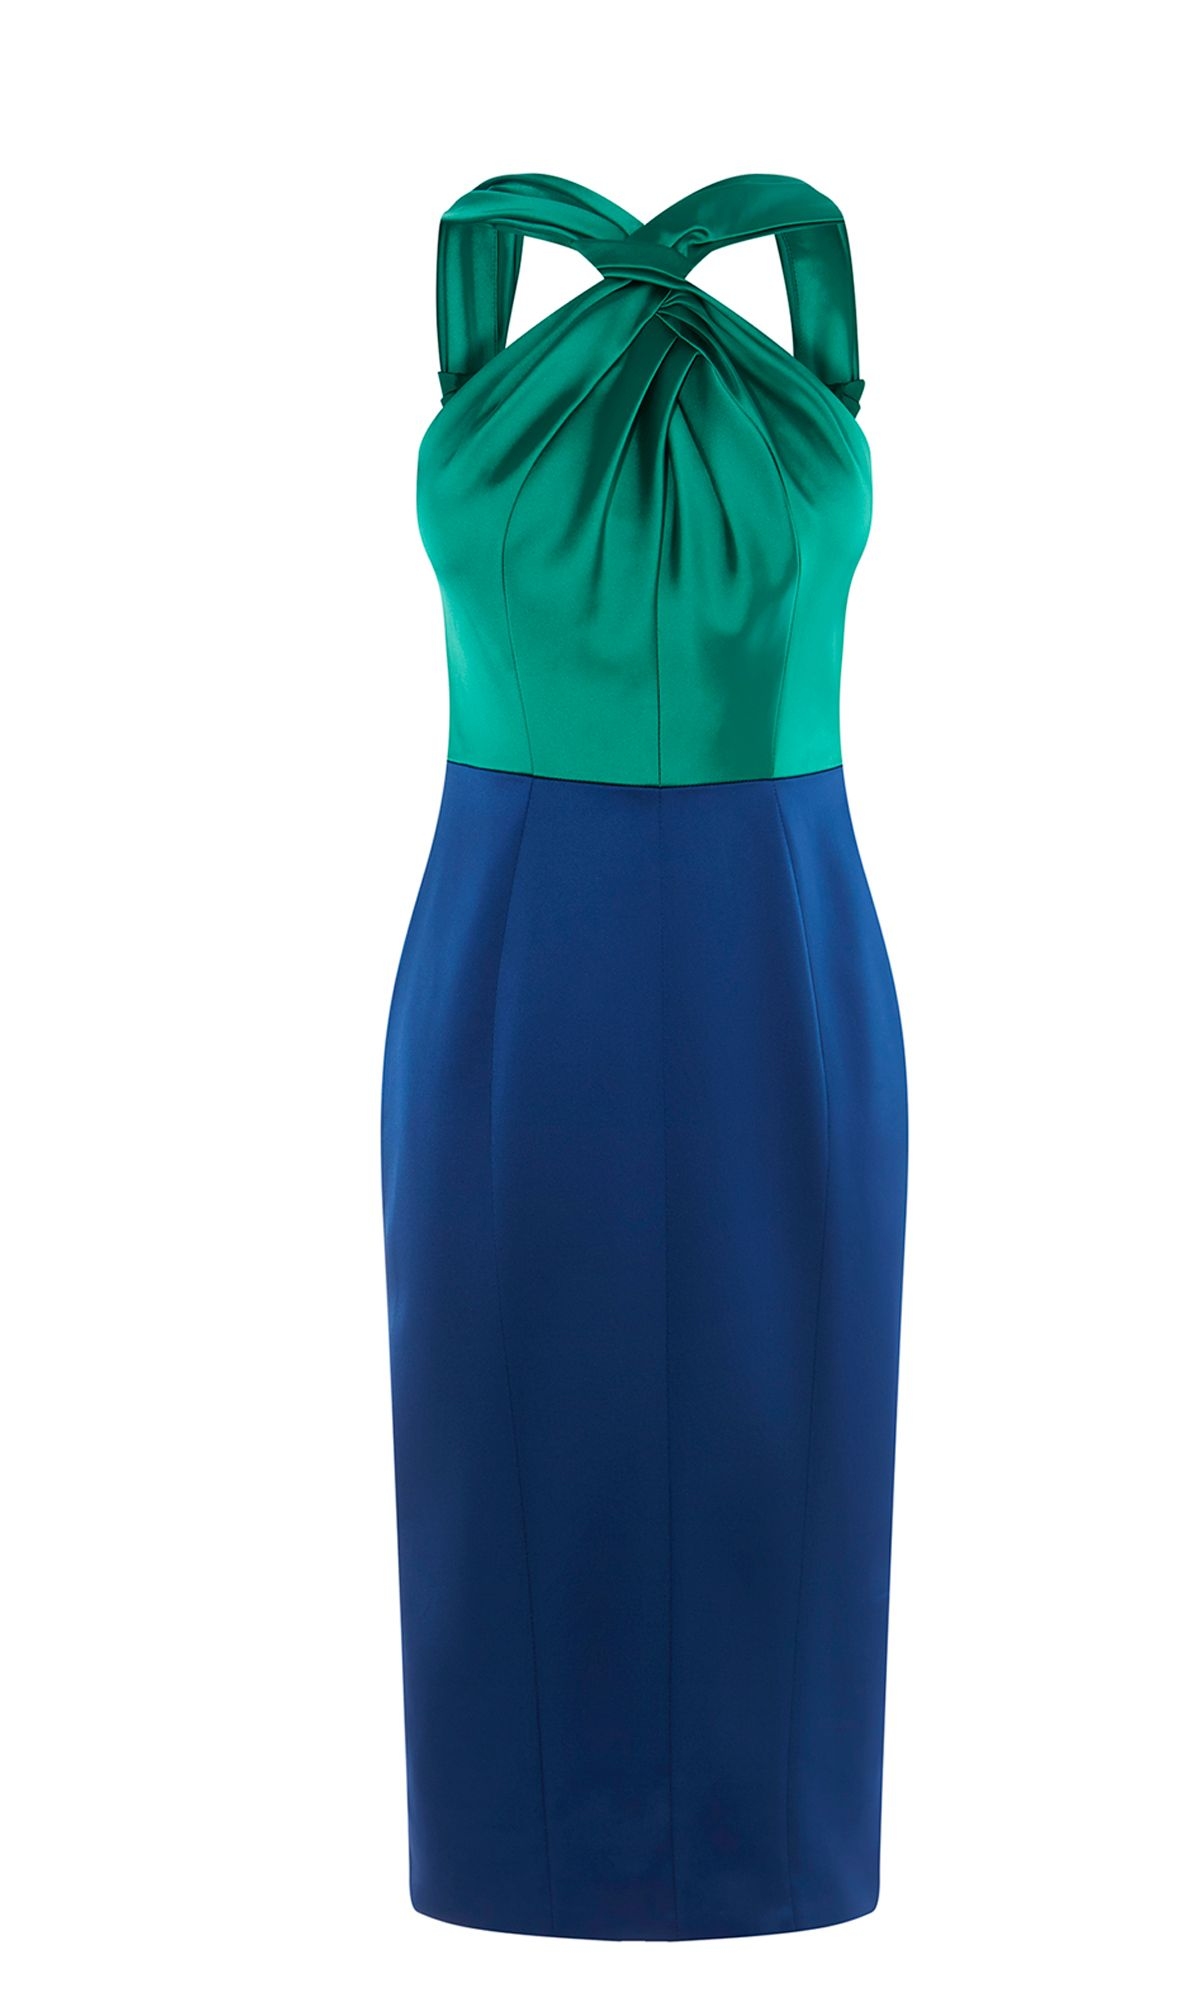 Karen Millen Satin Halterneck Pencil Dress, Multi-Coloured